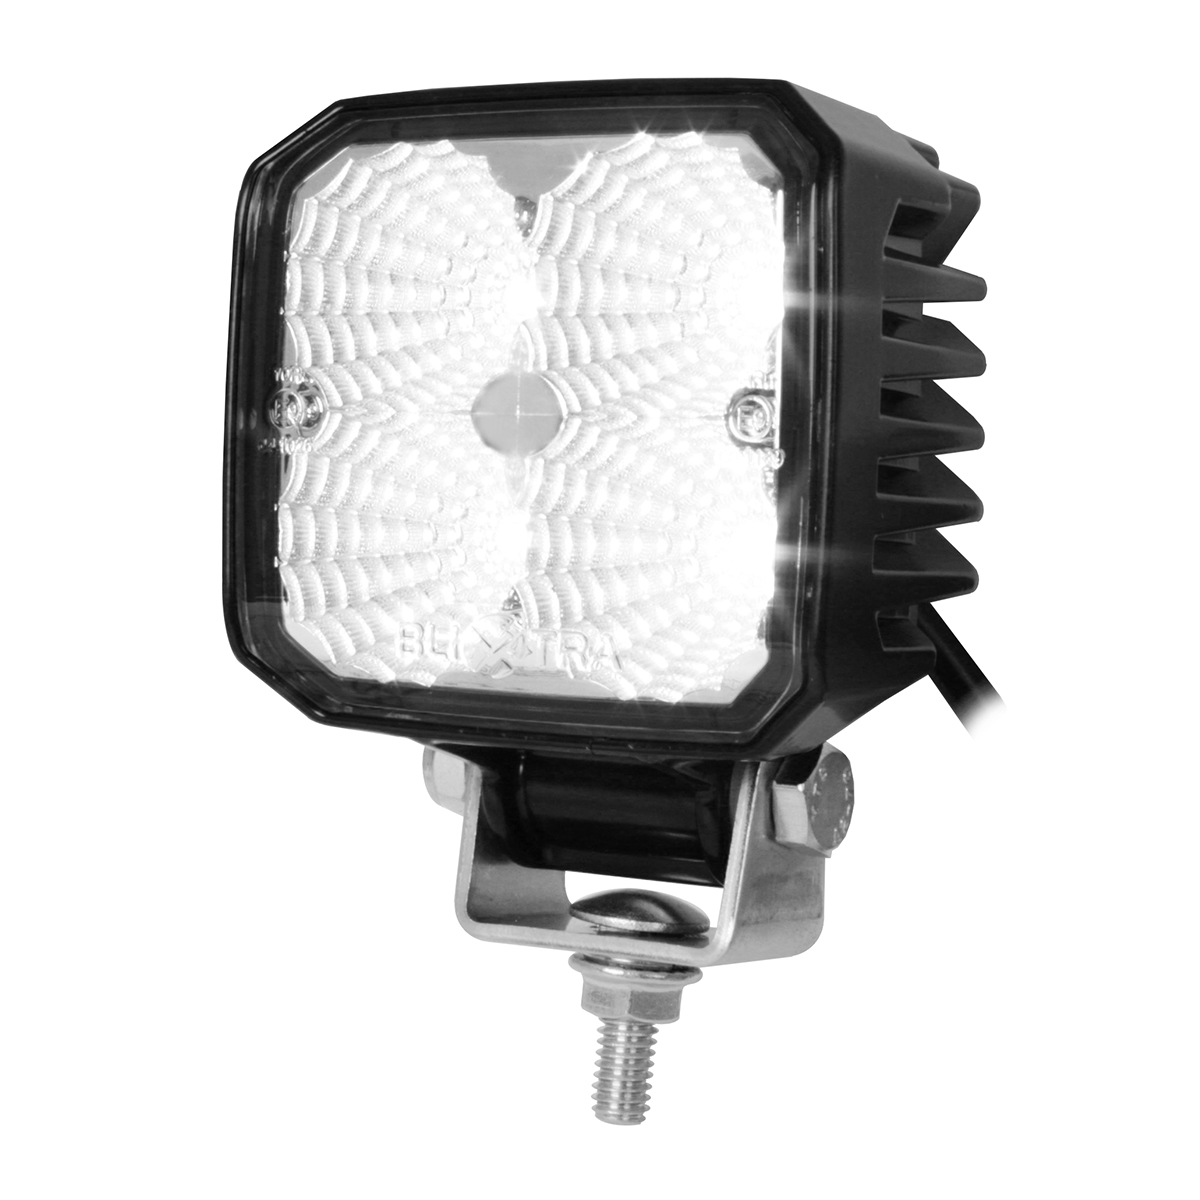 76363 Small High Power LED Work Light